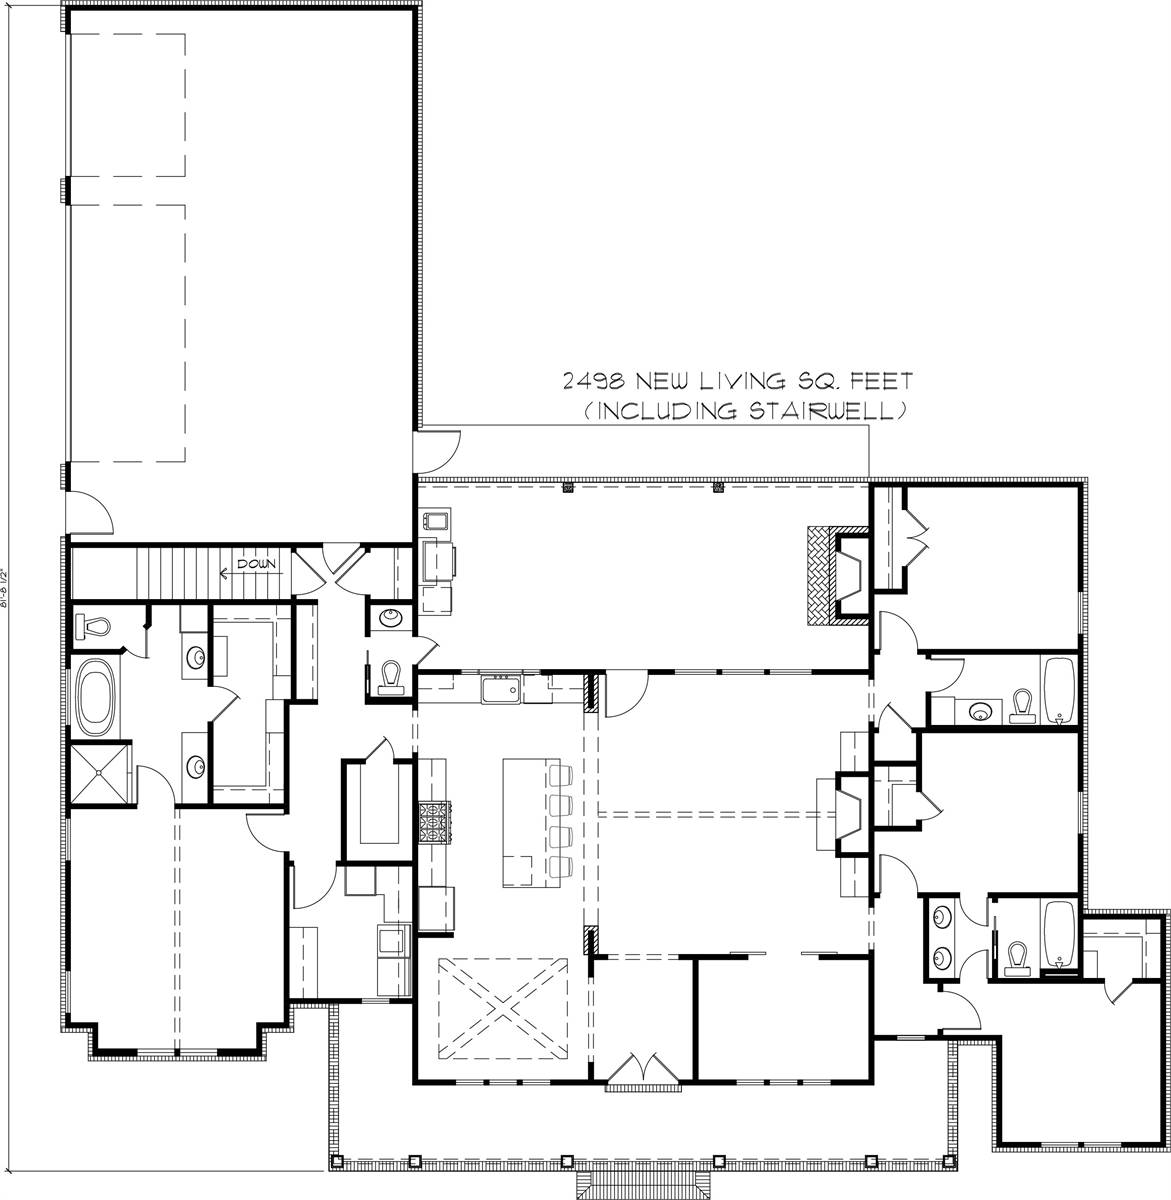 Basement Plan image of Black Creek House Plan